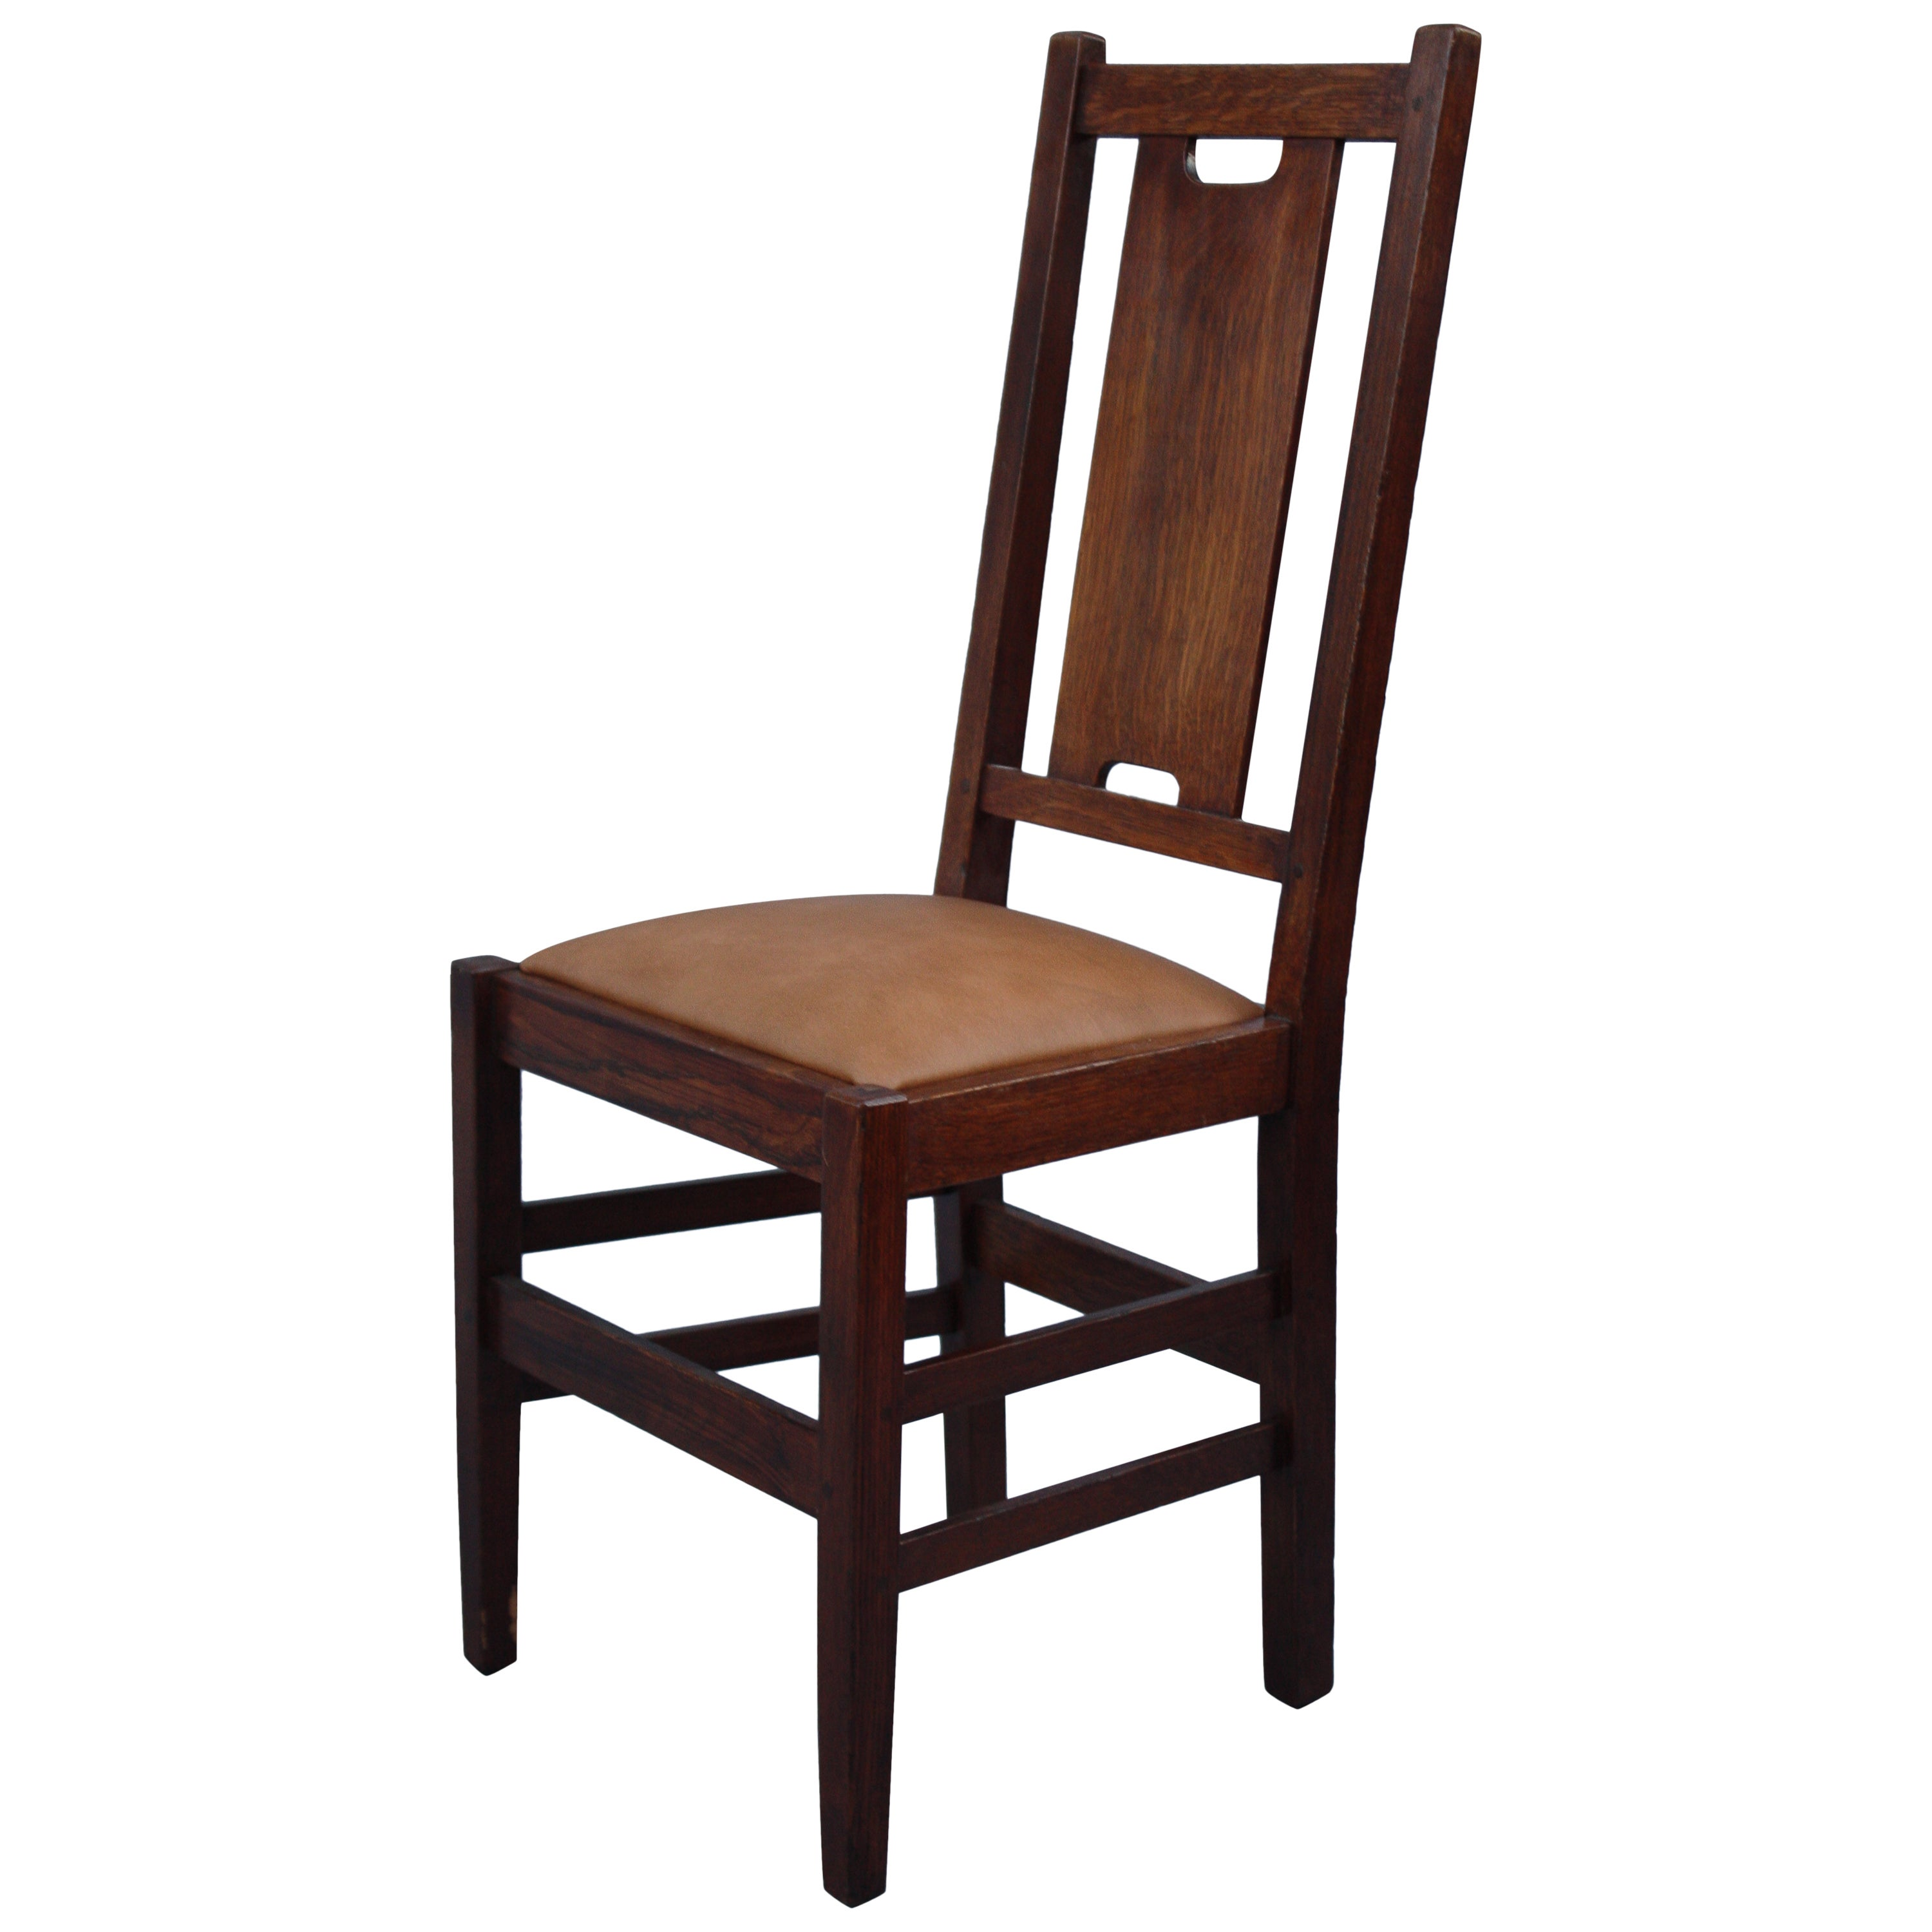 Attrayant 1910 Signed Gustav Stickley Chair For Sale At 1stdibs